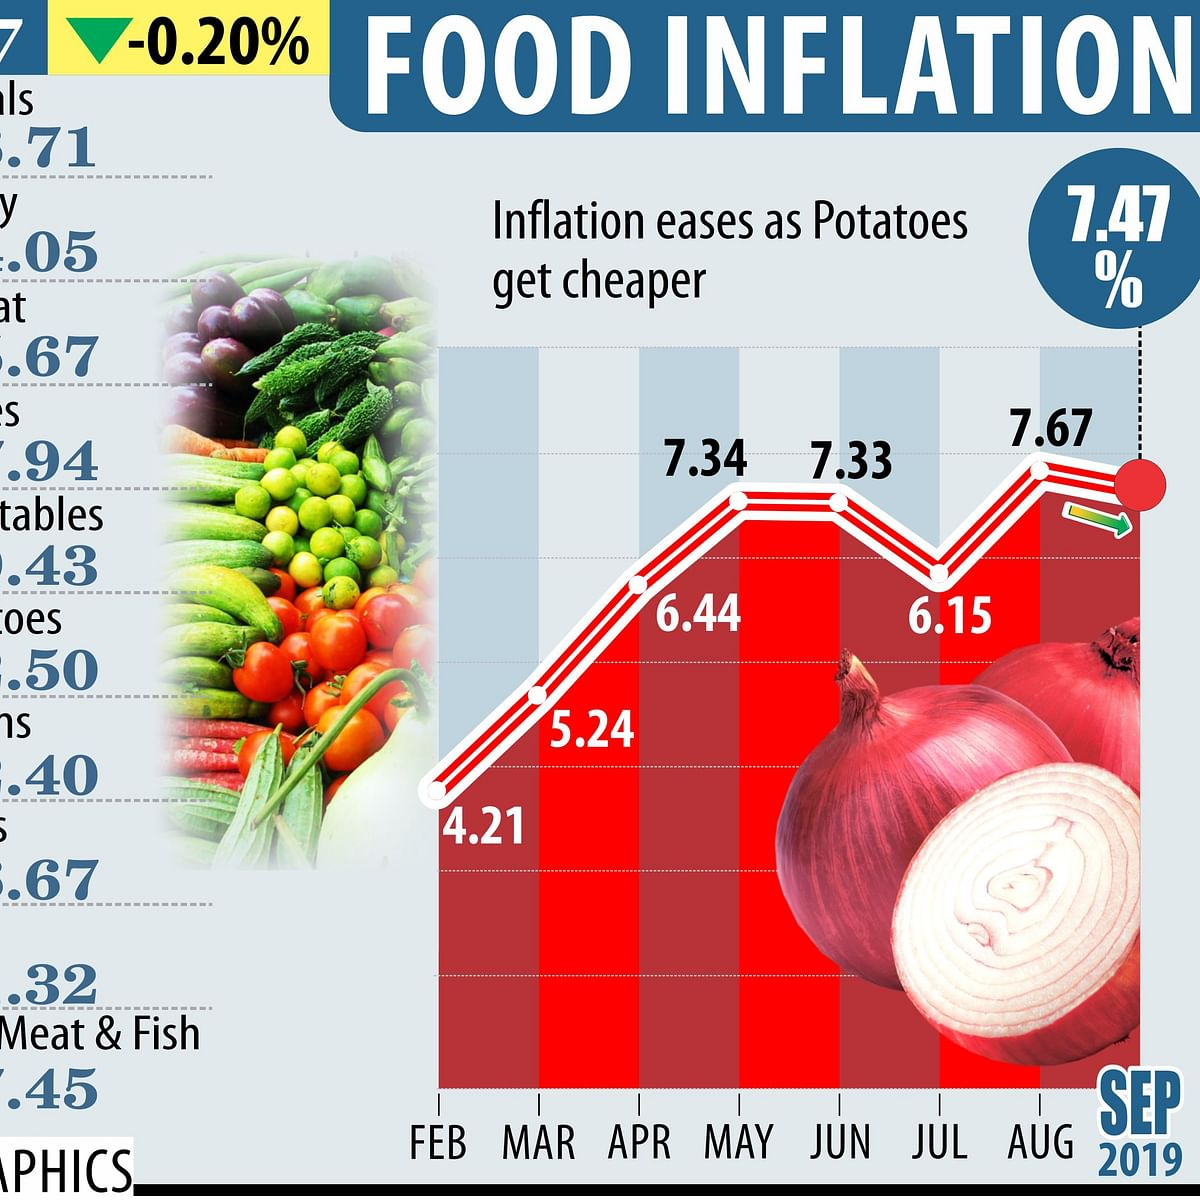 Despite inflation rise, analysts see RBI cutting rates in December